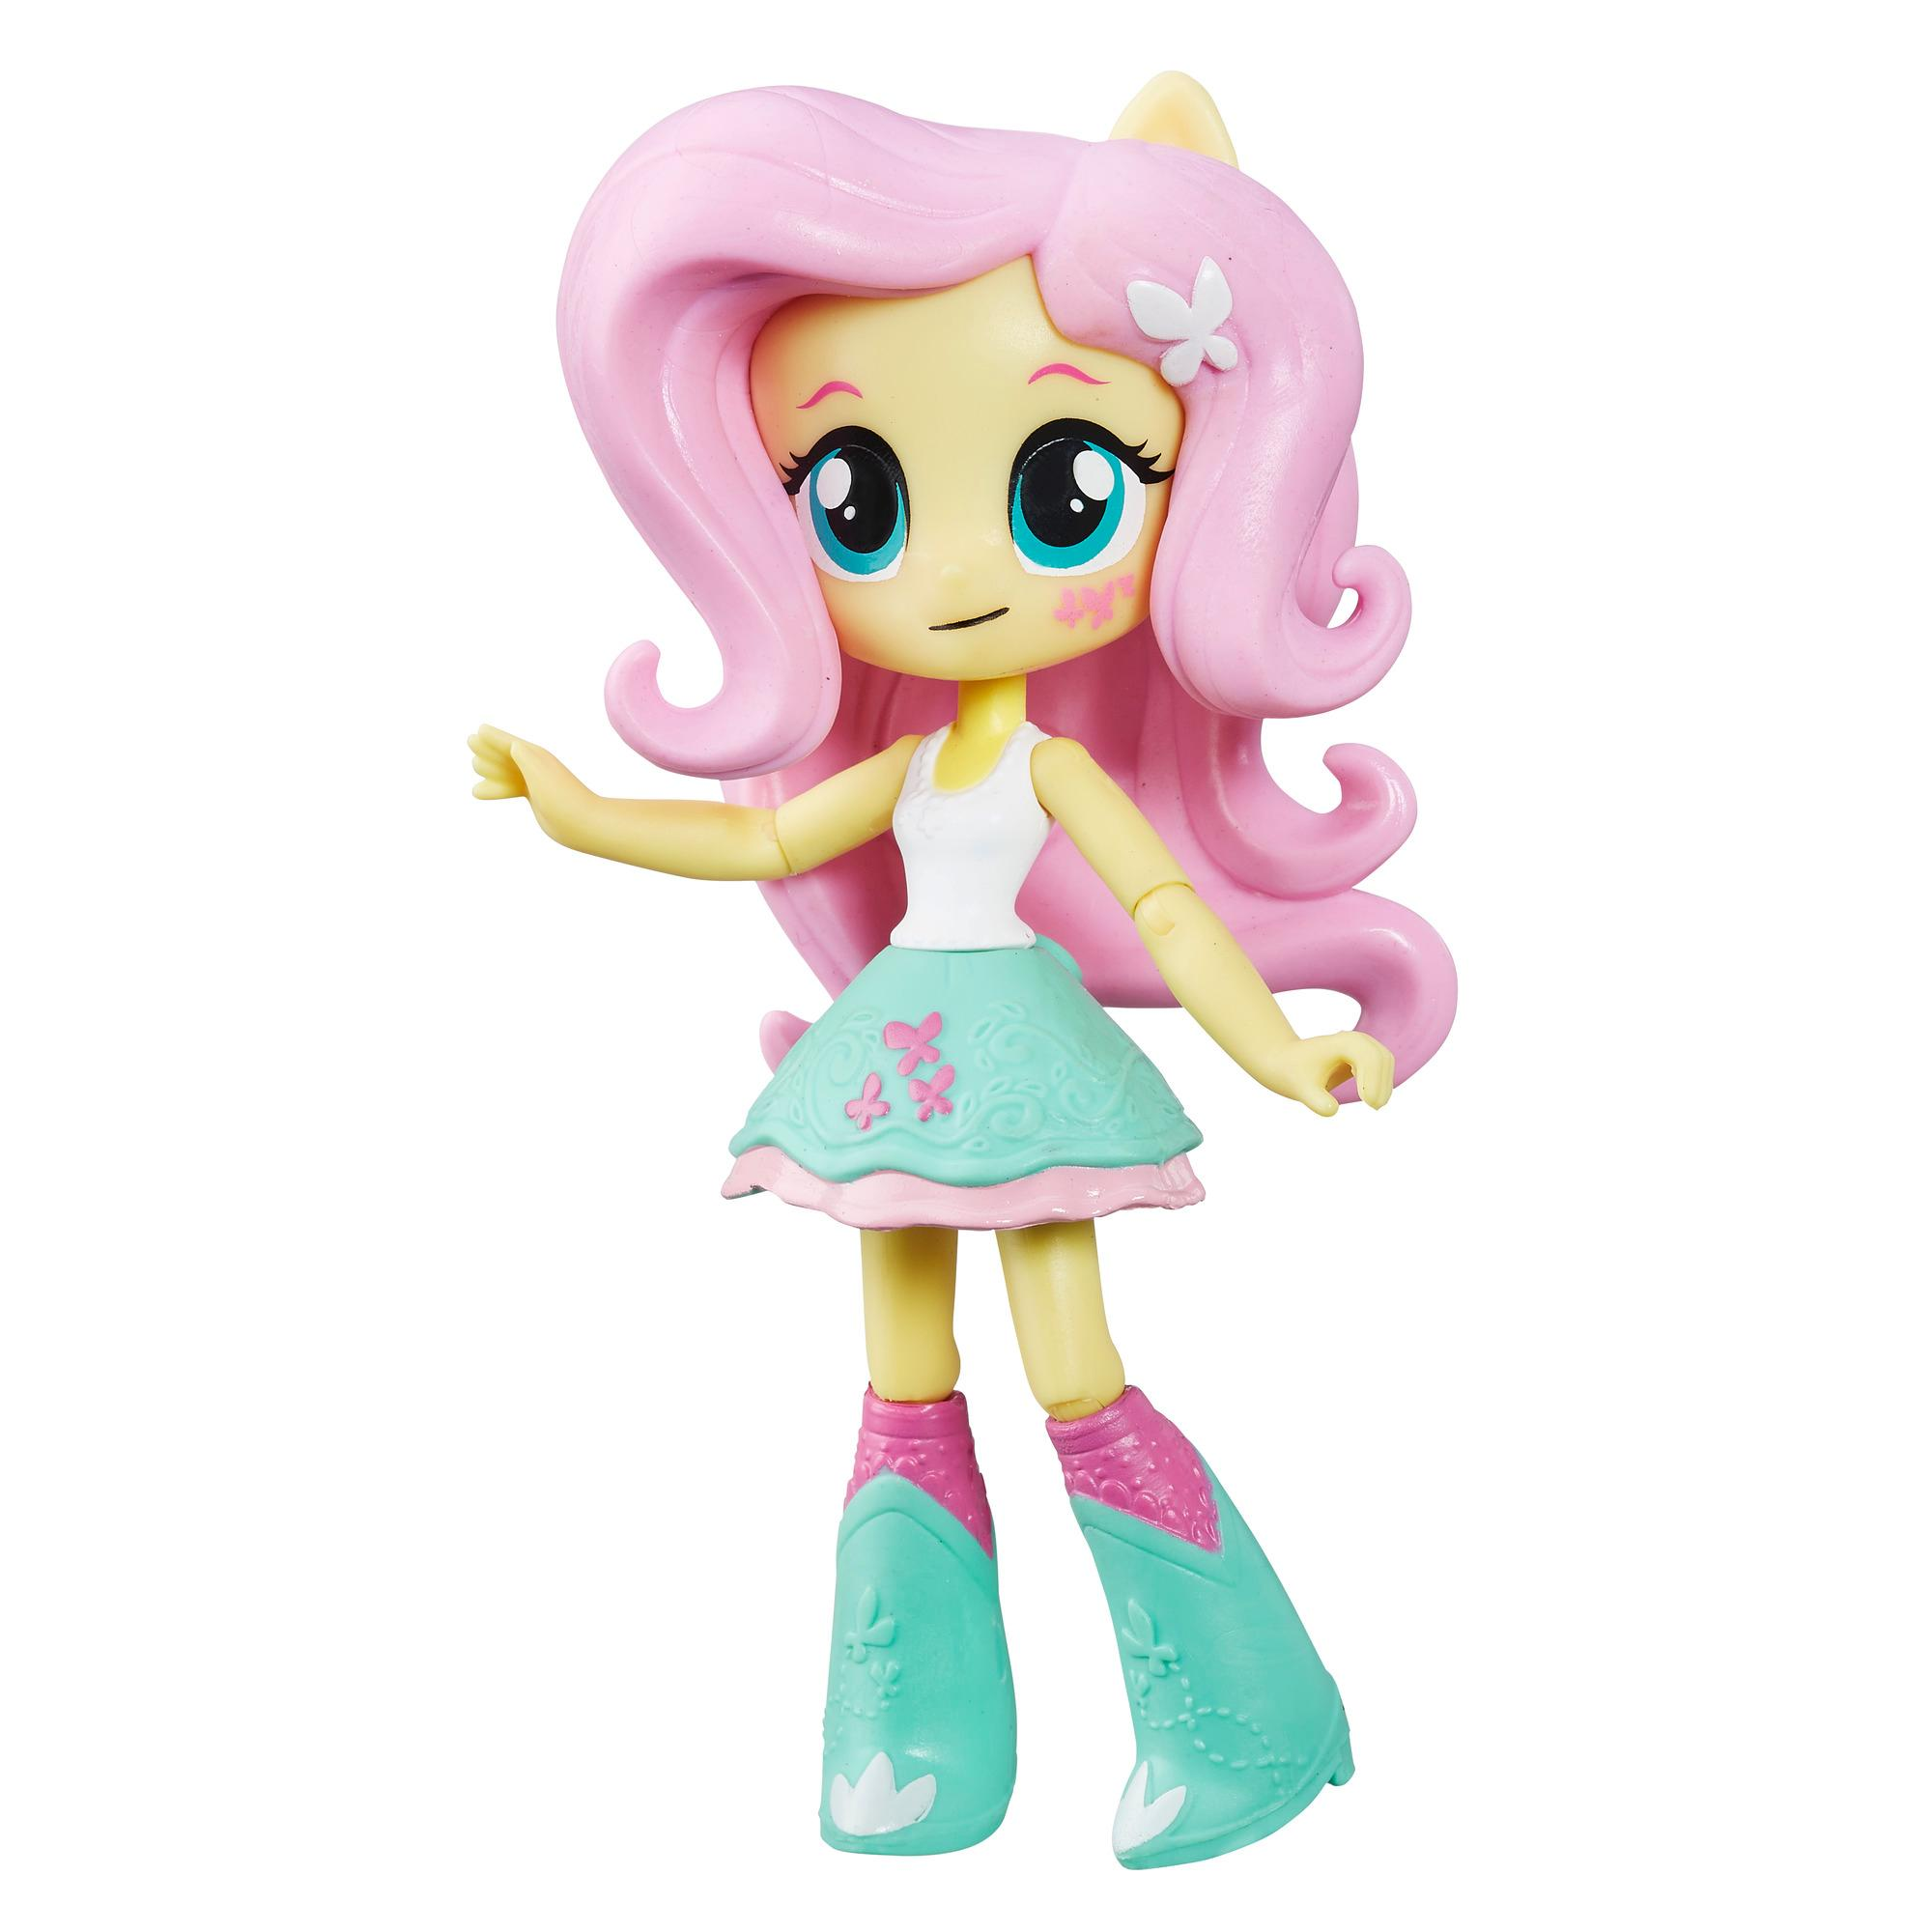 My Little Pony Equestria Girls Minis Fluttershy Doll